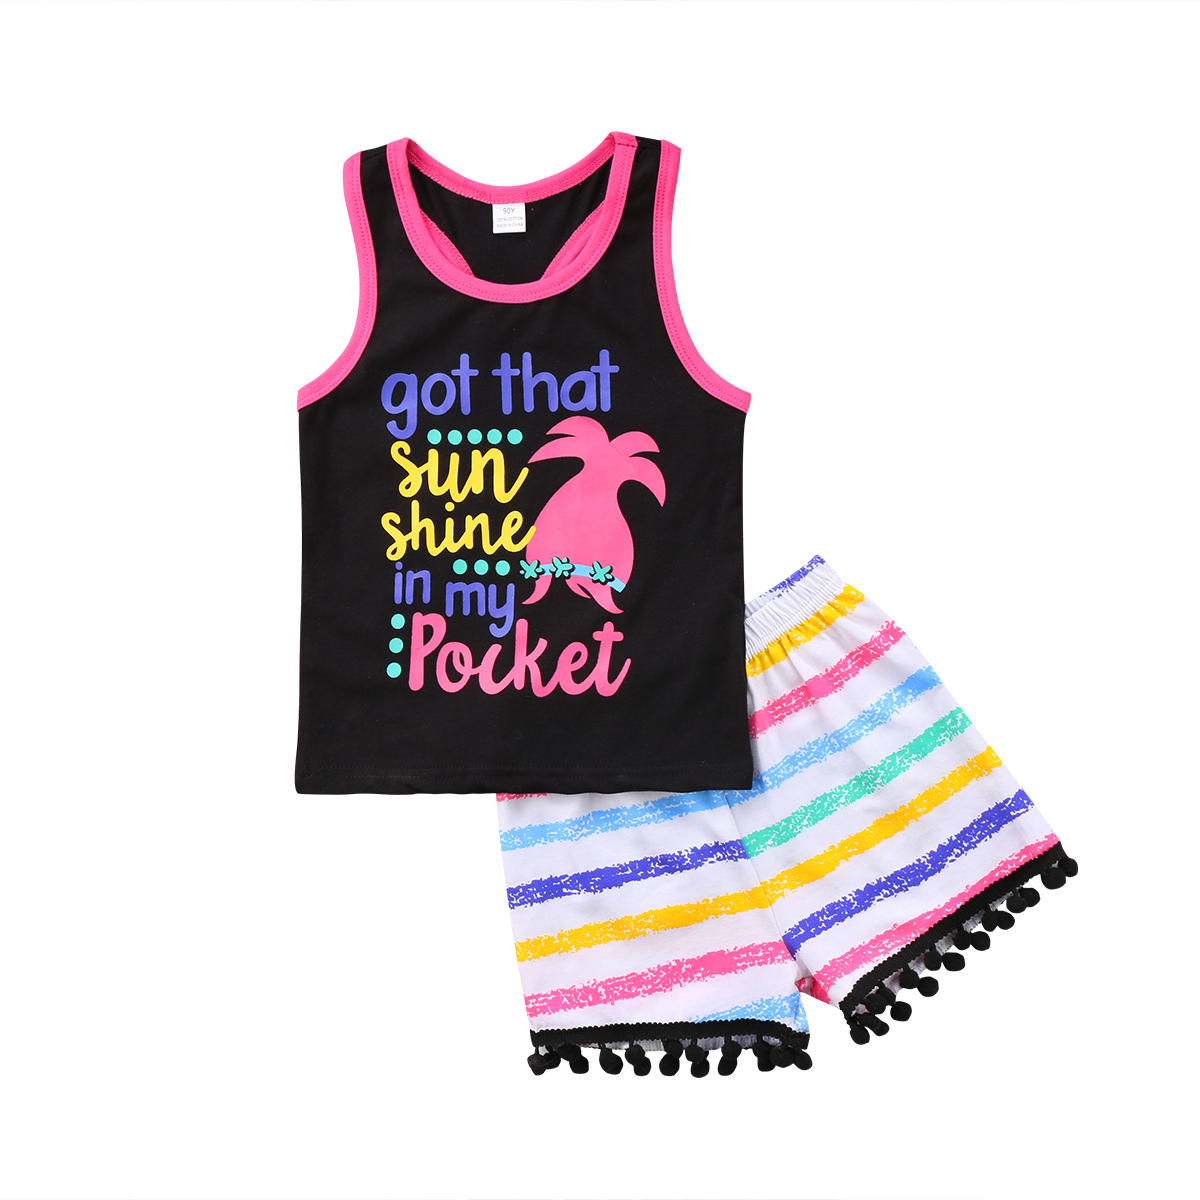 2PCS Summer Kids Baby Girl Clothing Sleeveless Tank Top T Shirt Shorts Cotton Casual Clothes Outfit Set Girls 1-6T